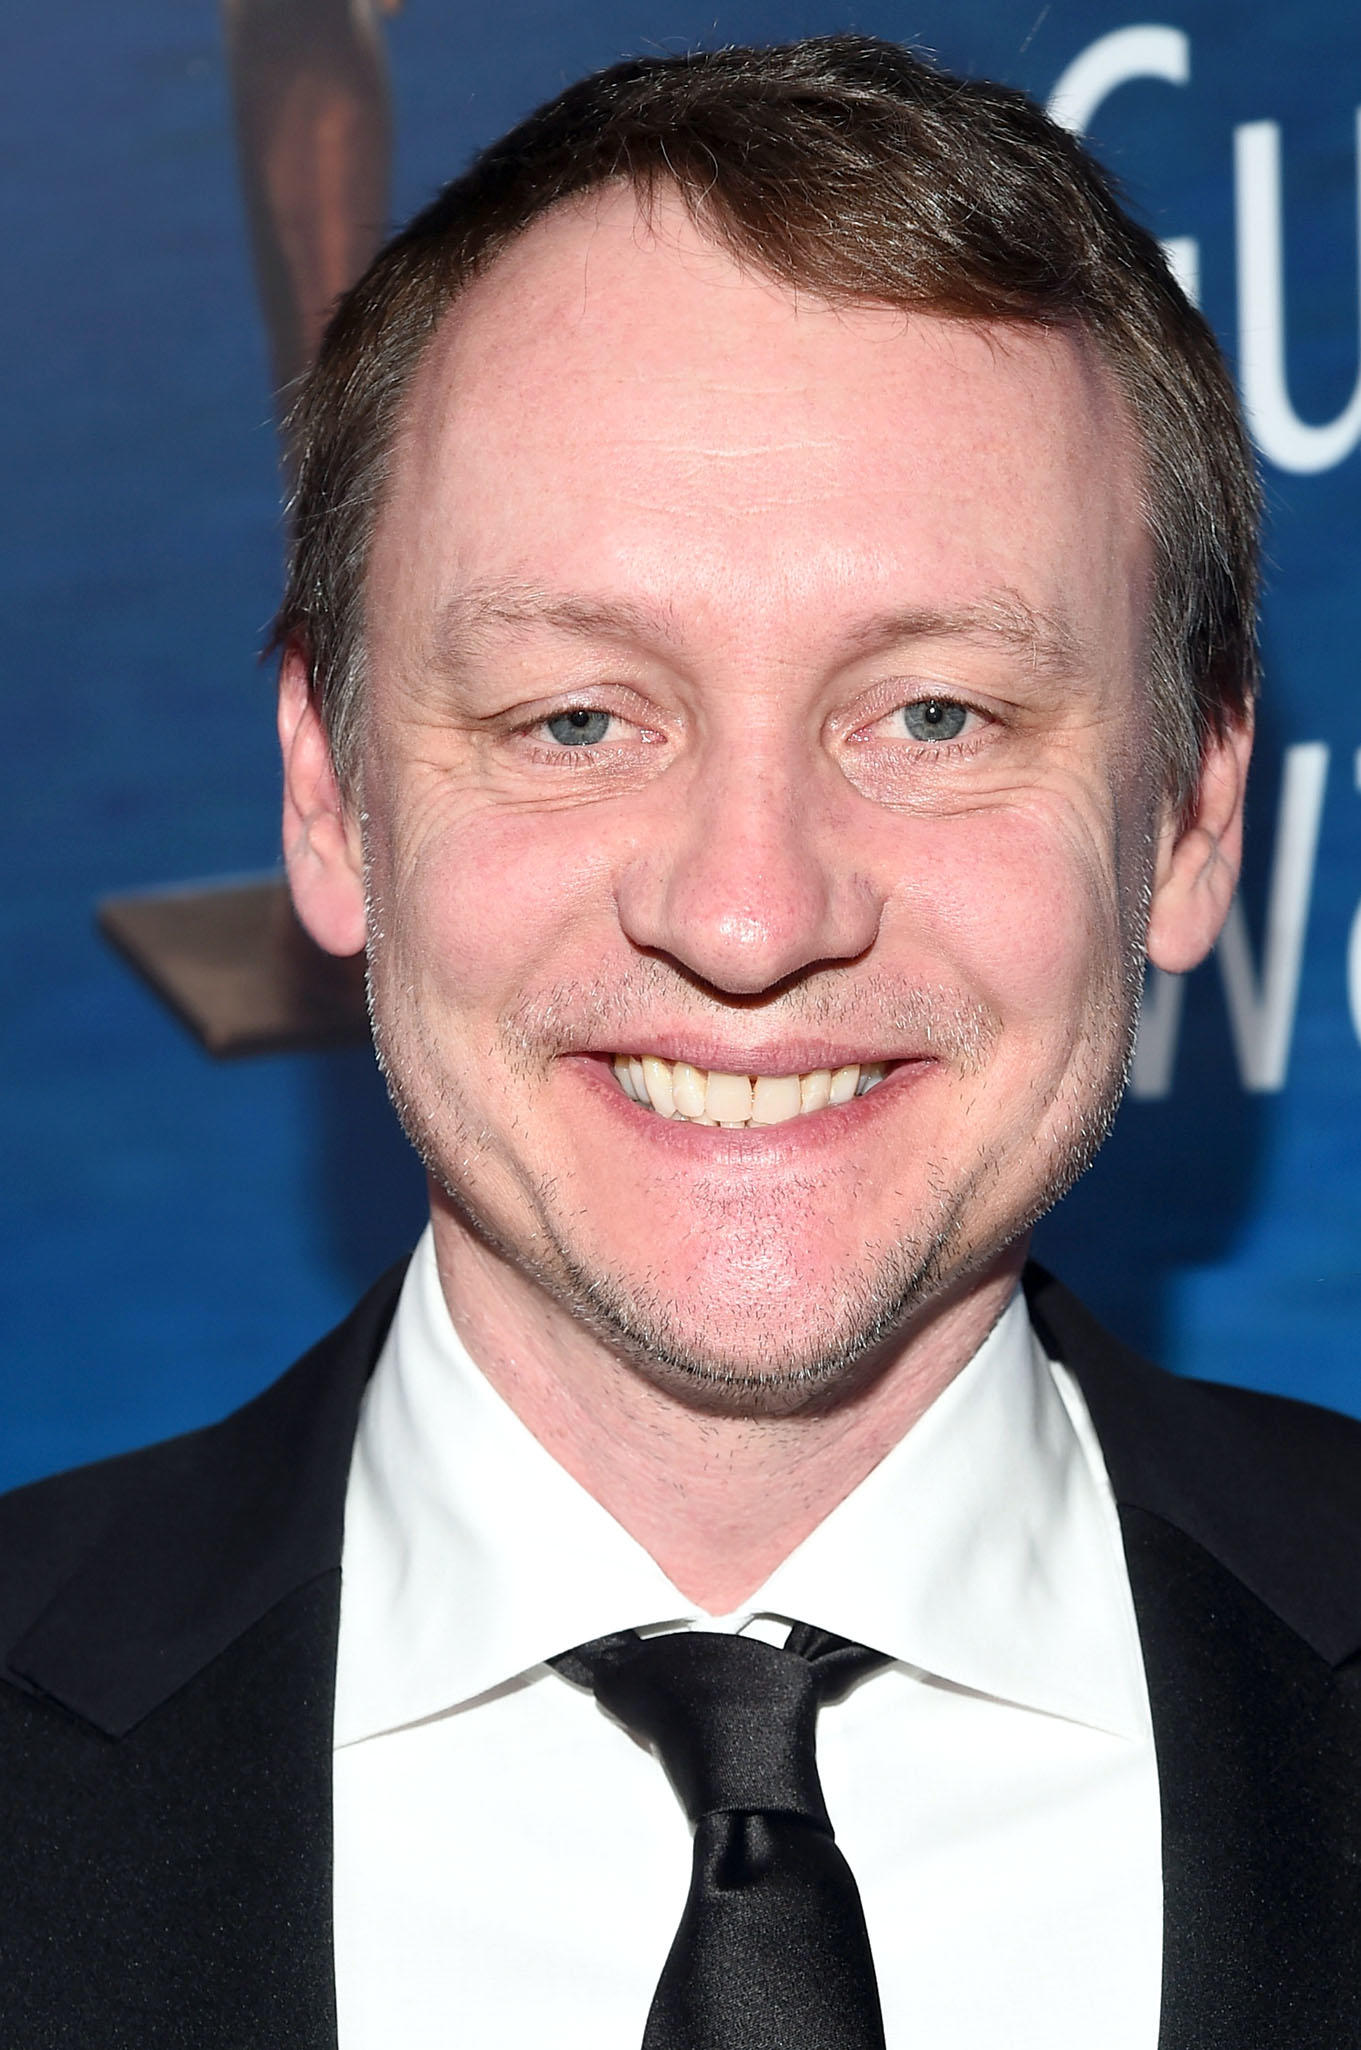 Alec Berg at the 2017 Writers Guild Awards L.A. Ceremony.